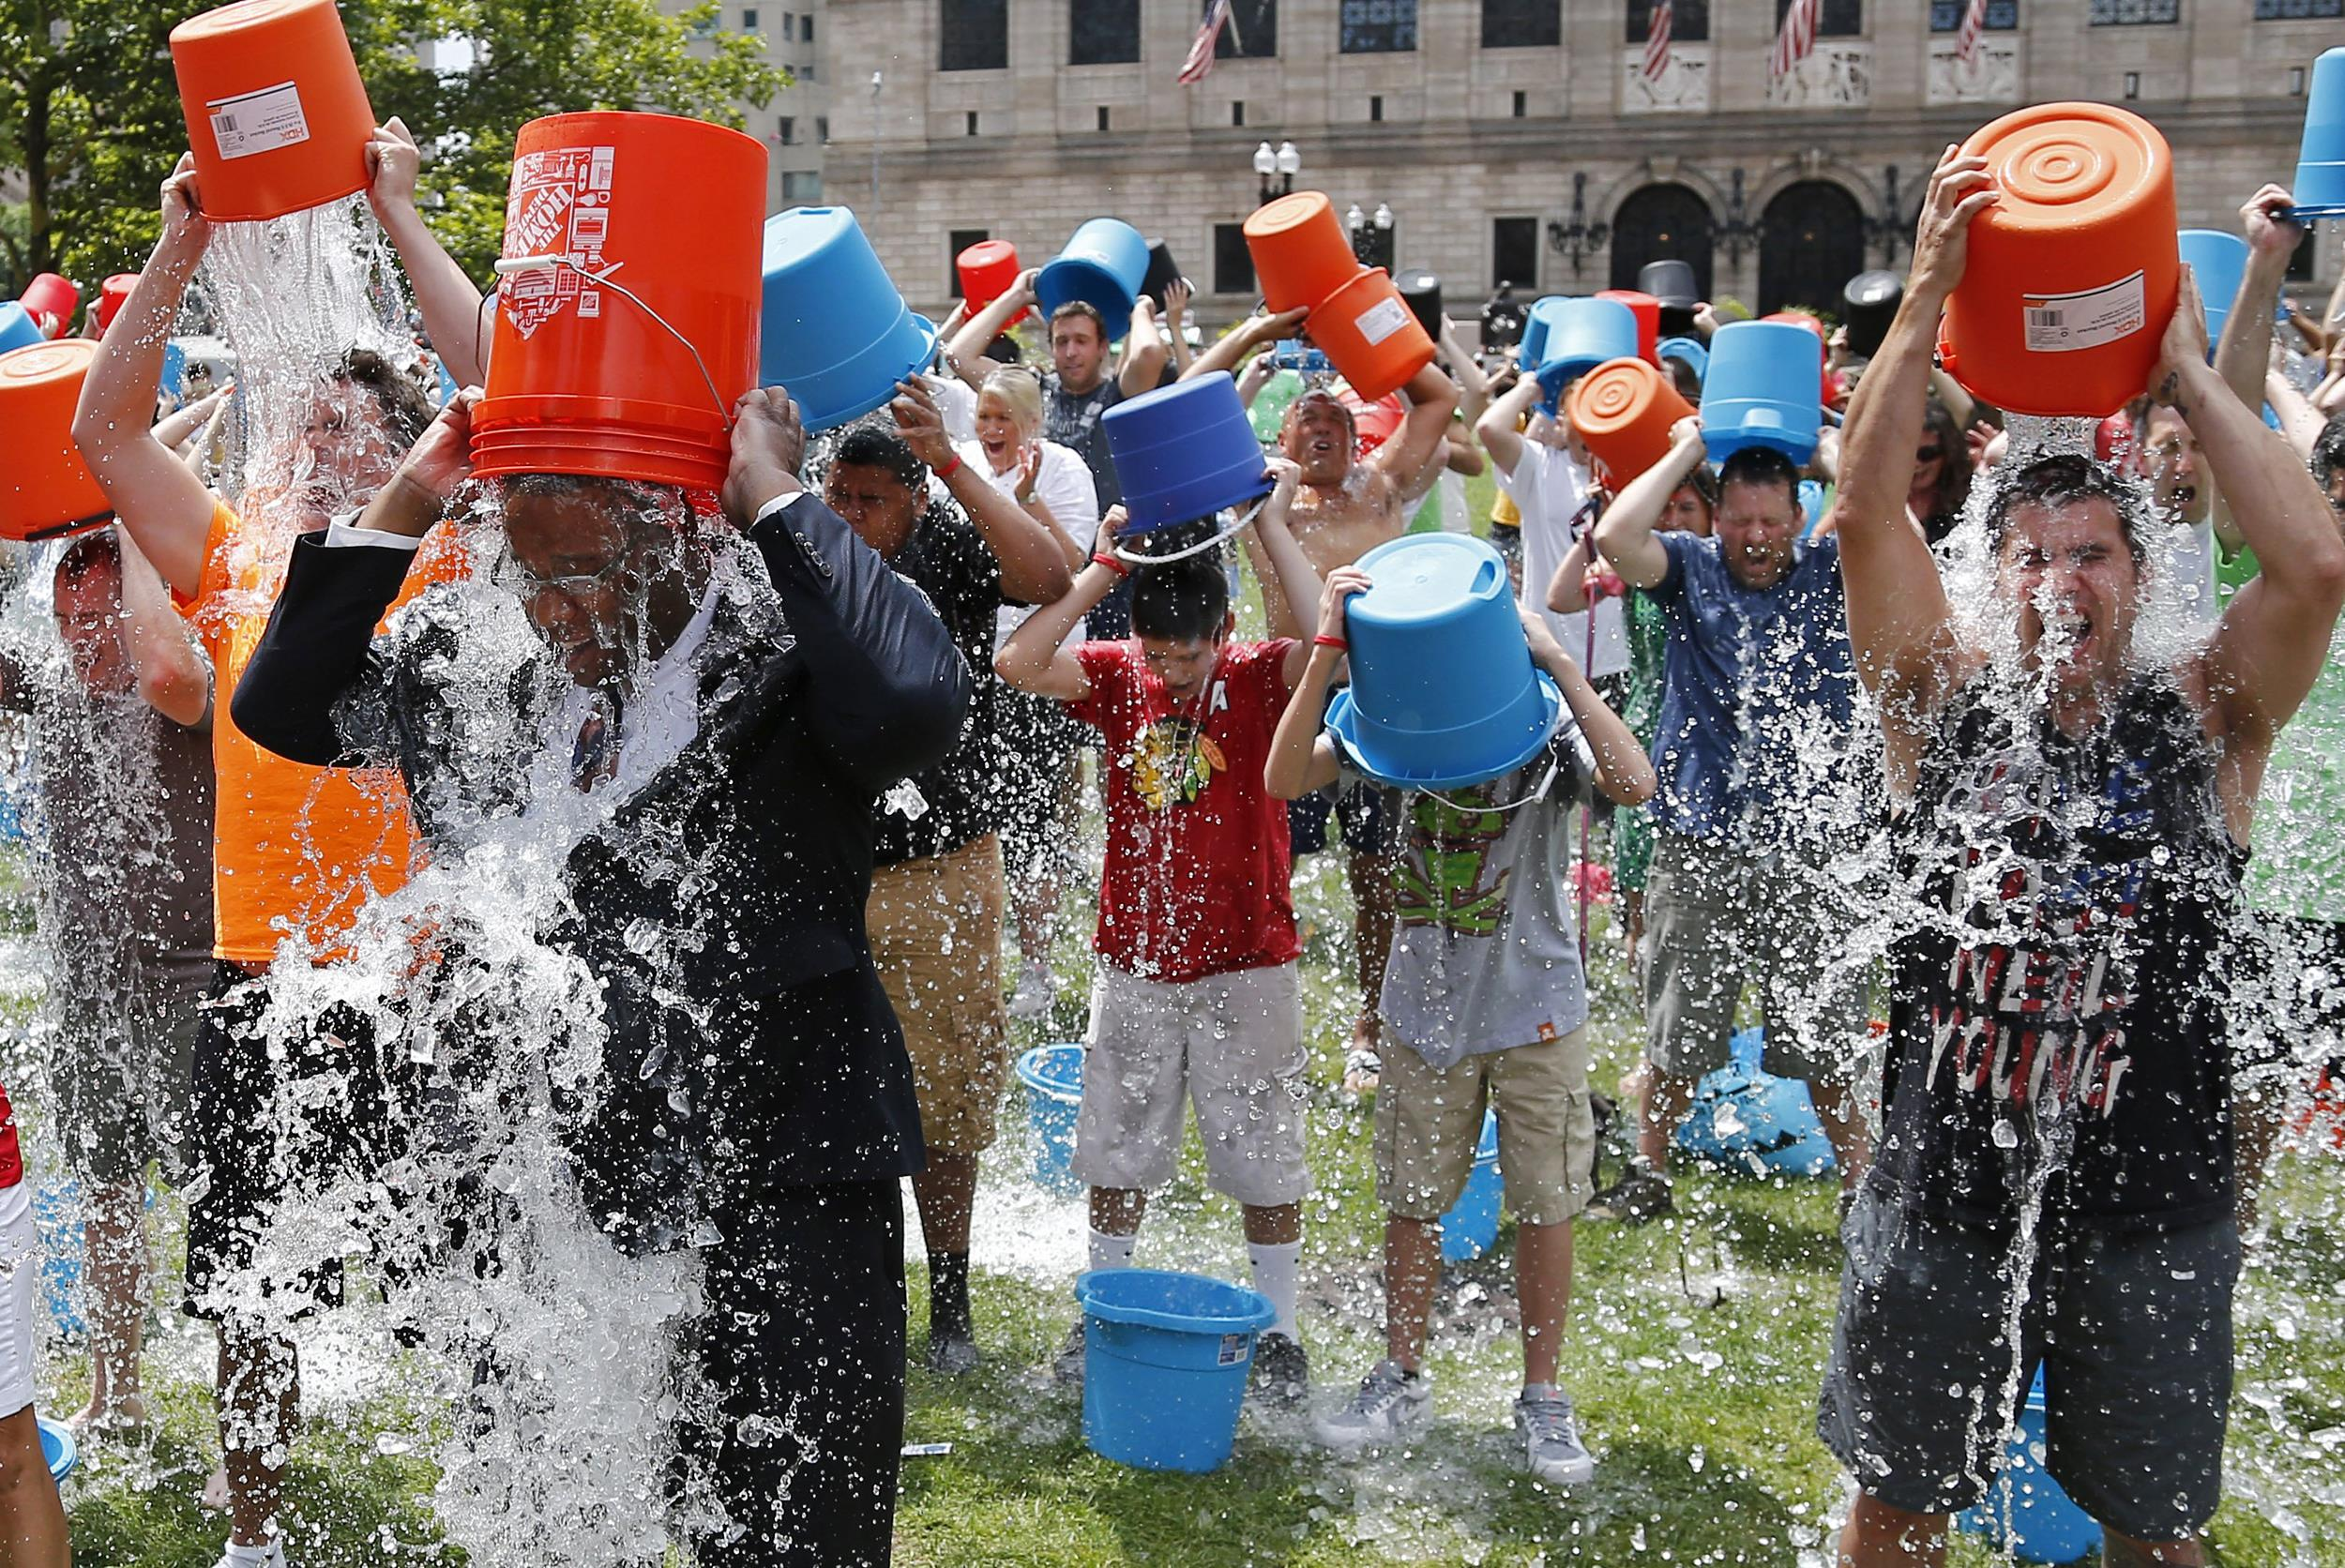 https://i2.wp.com/media1.s-nbcnews.com/i/newscms/2014_33/612011/140811-boston-ice-bucket-challenge-1350_26906d39ac7ead702b45e5b7707b8dc6.jpg